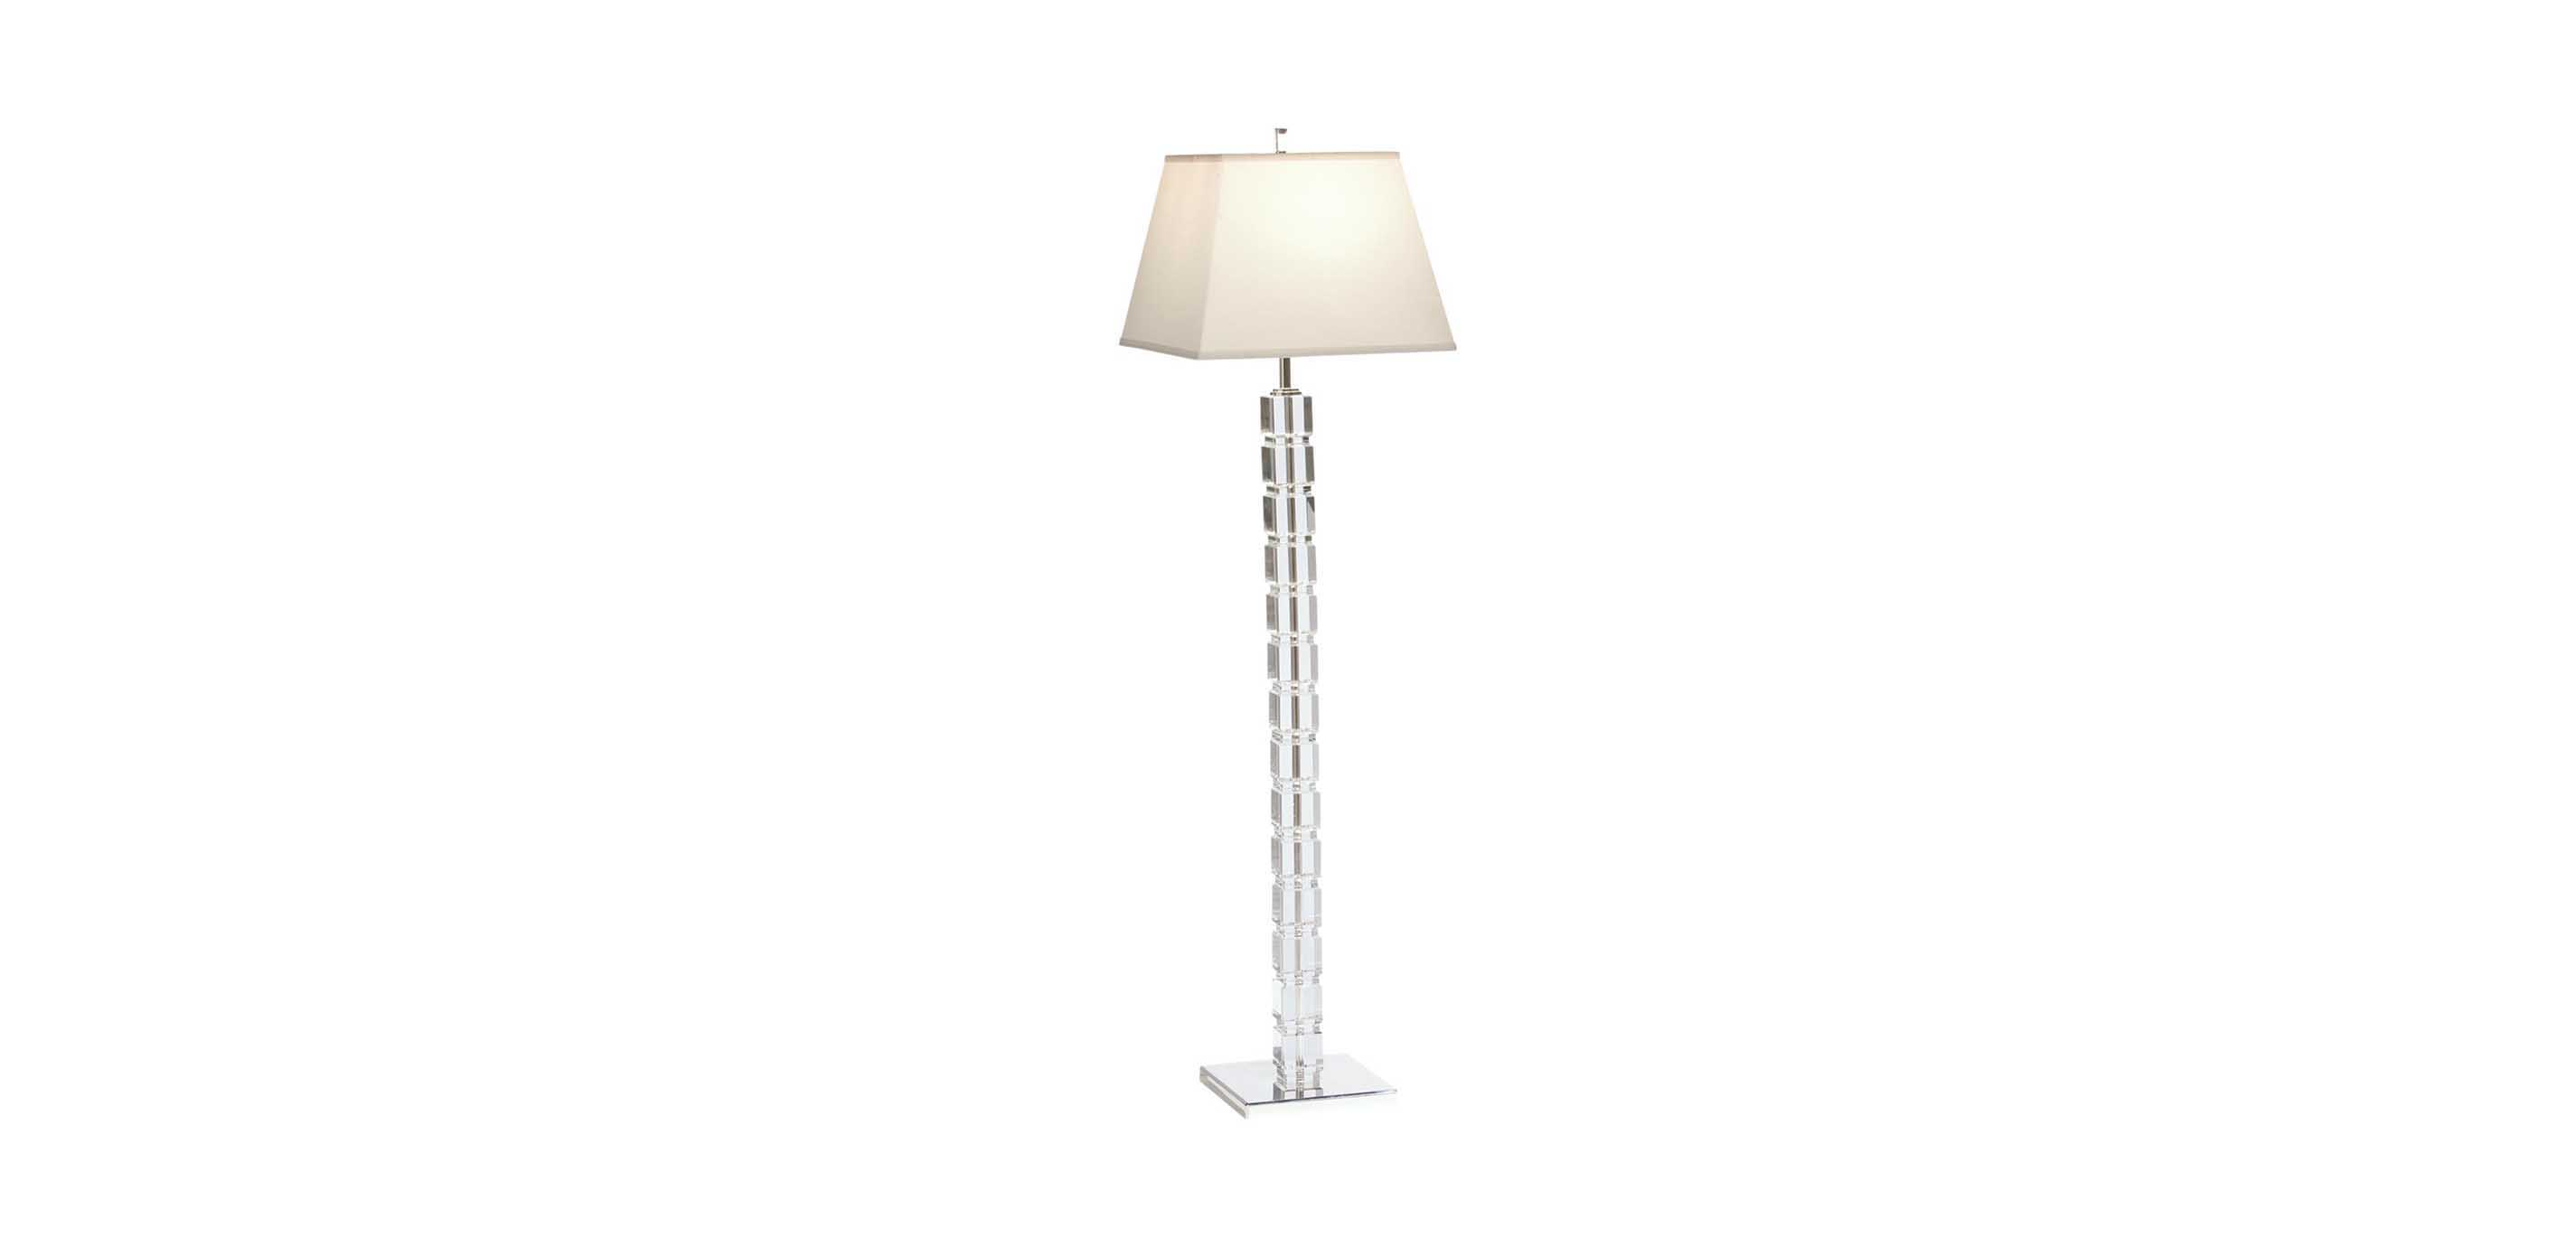 Crystal blocks floor lamp floor lamps ethan allen images null mozeypictures Choice Image